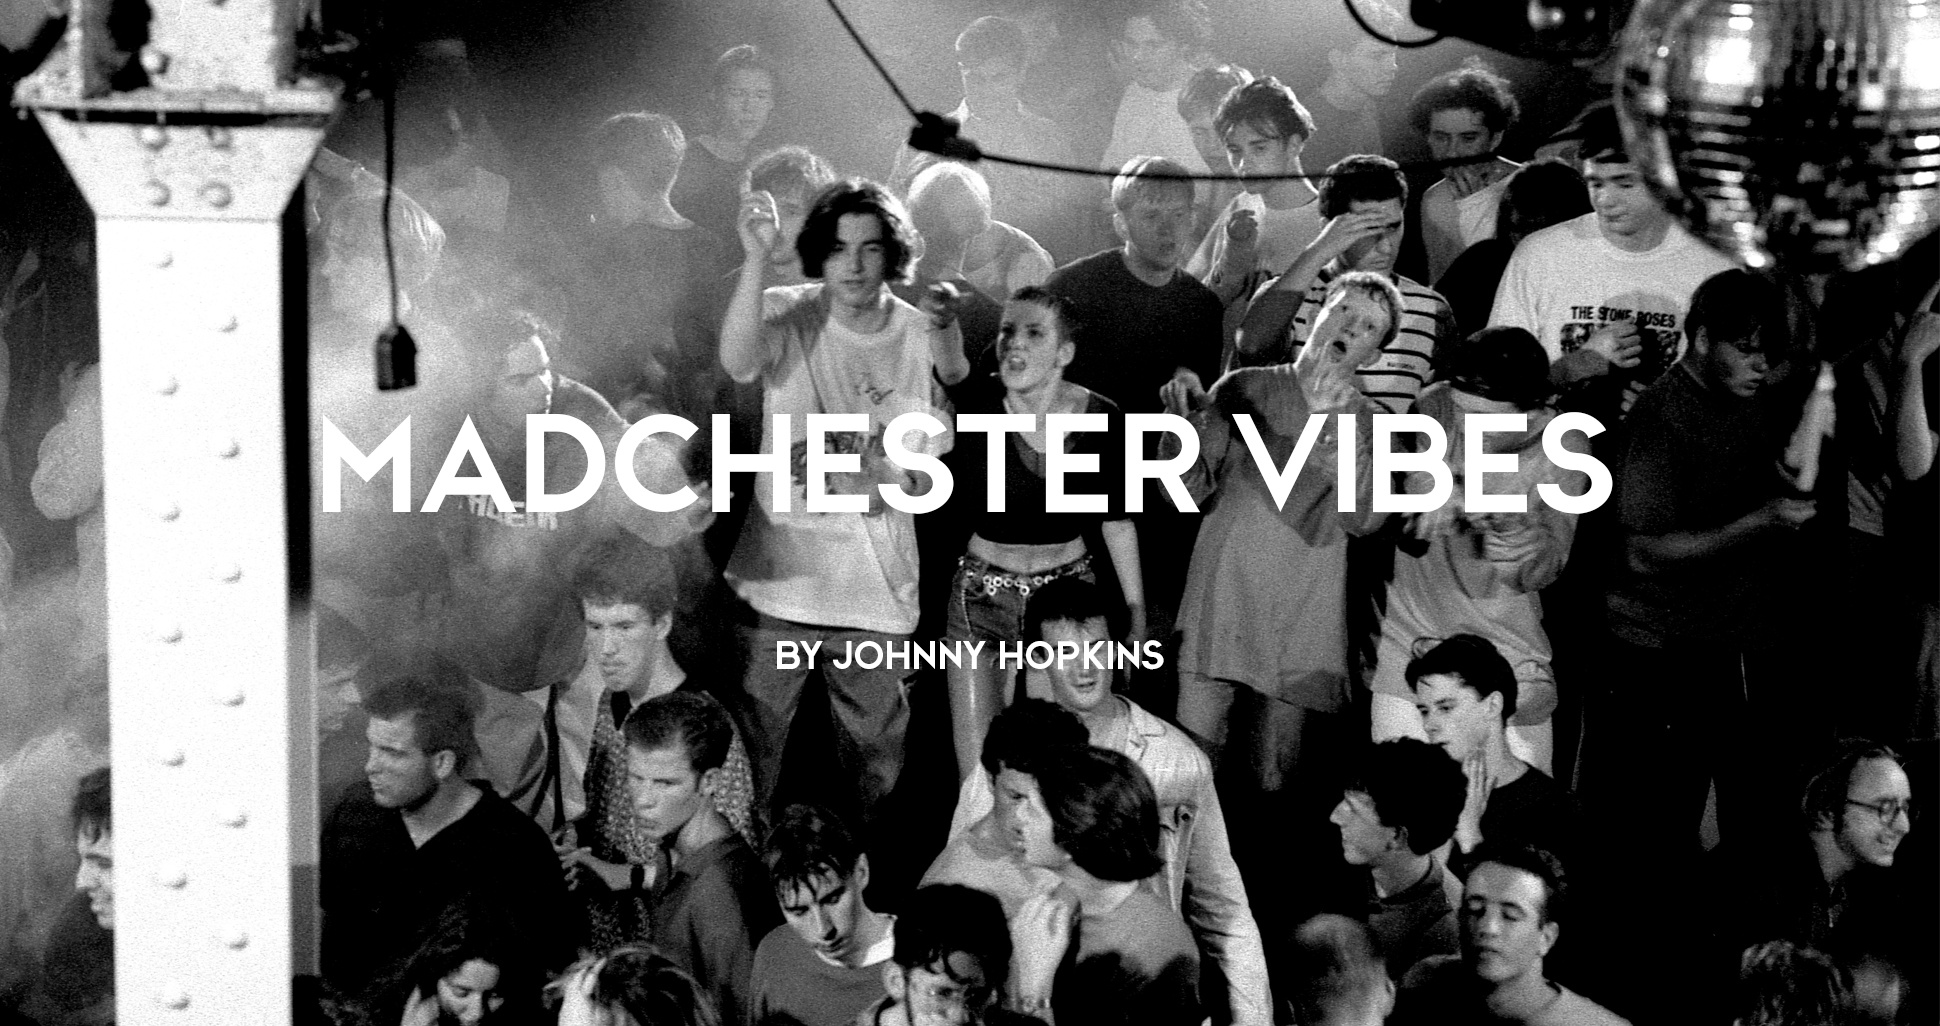 Madchester acid house ravers on the dance floor at The Hacienda, second summer of love, Manchester, 1980s by Peter Walsh